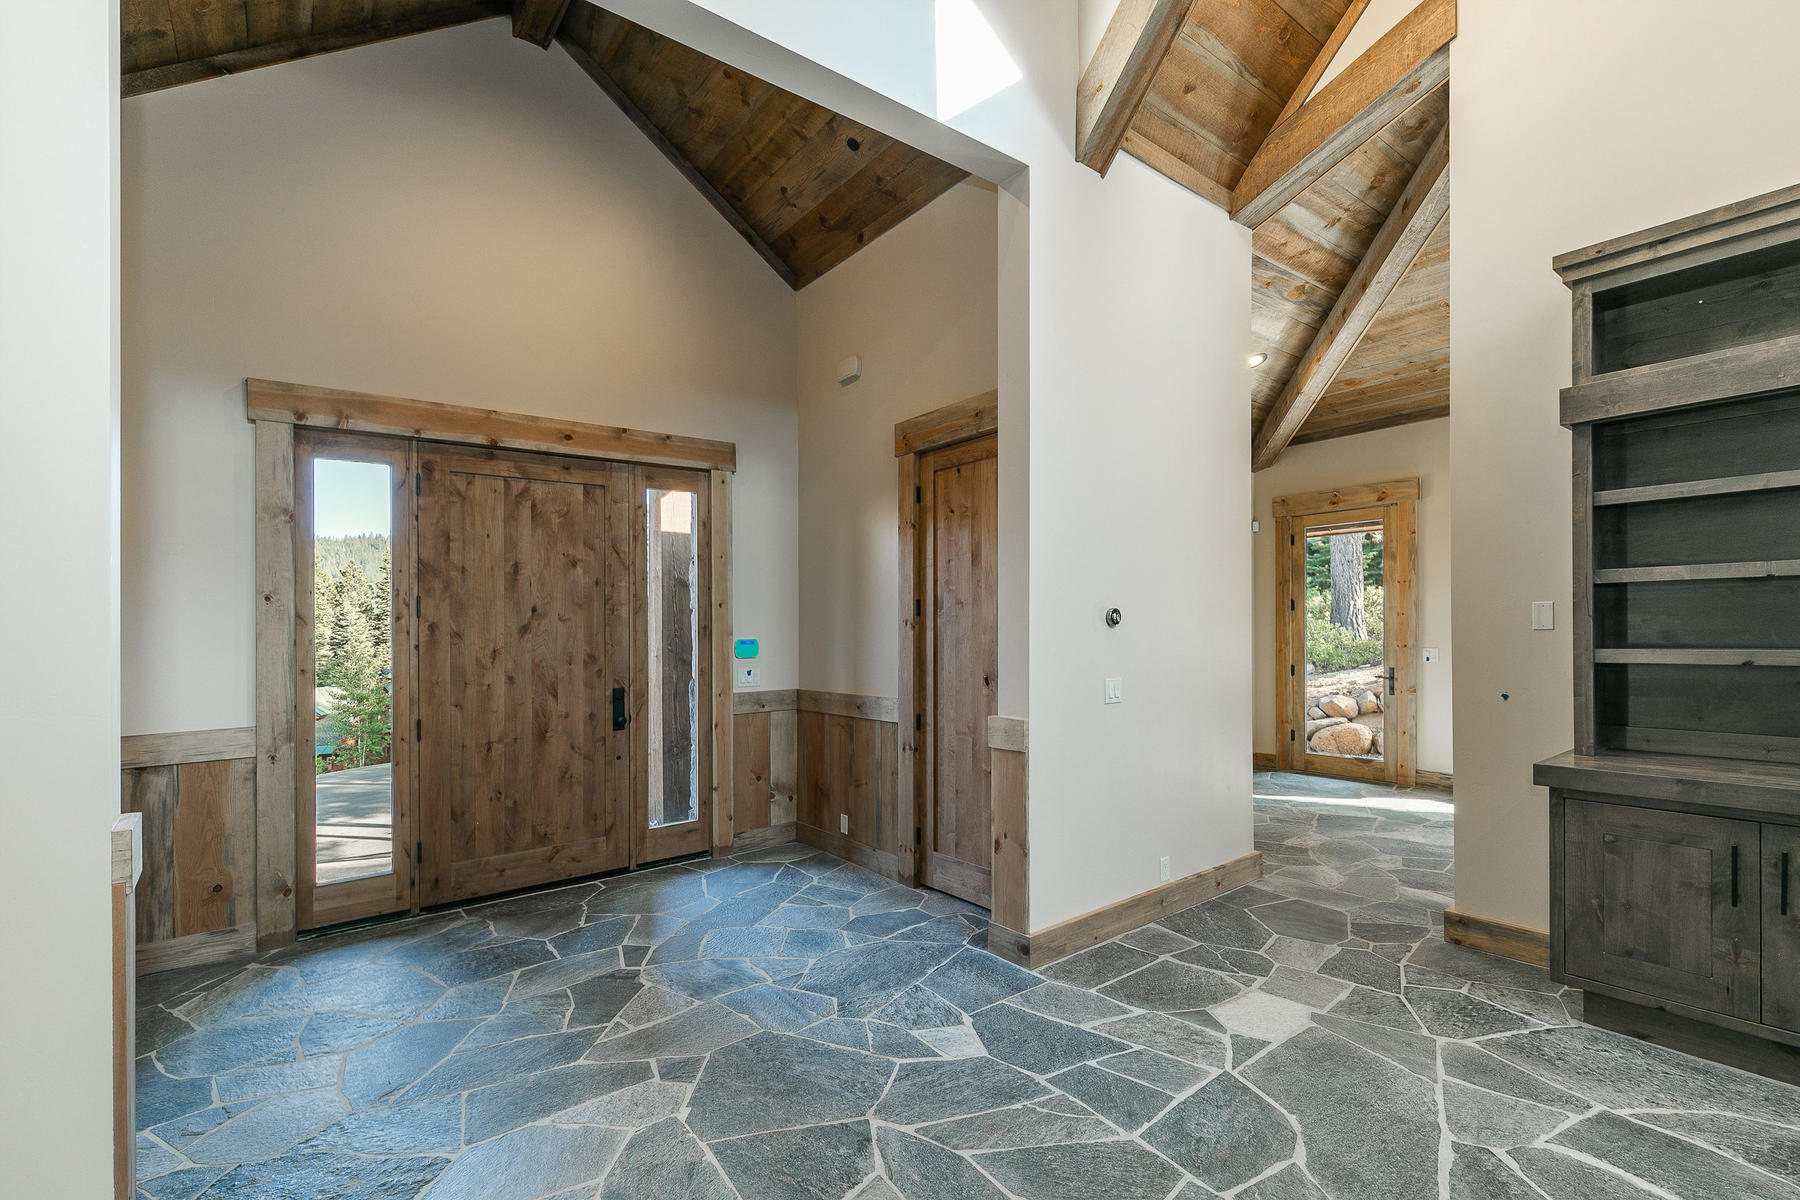 Additional photo for property listing at 2110 Eagle Feather Court , Truckee, CA 2110 Eagle Feather Truckee, California 96161 Estados Unidos